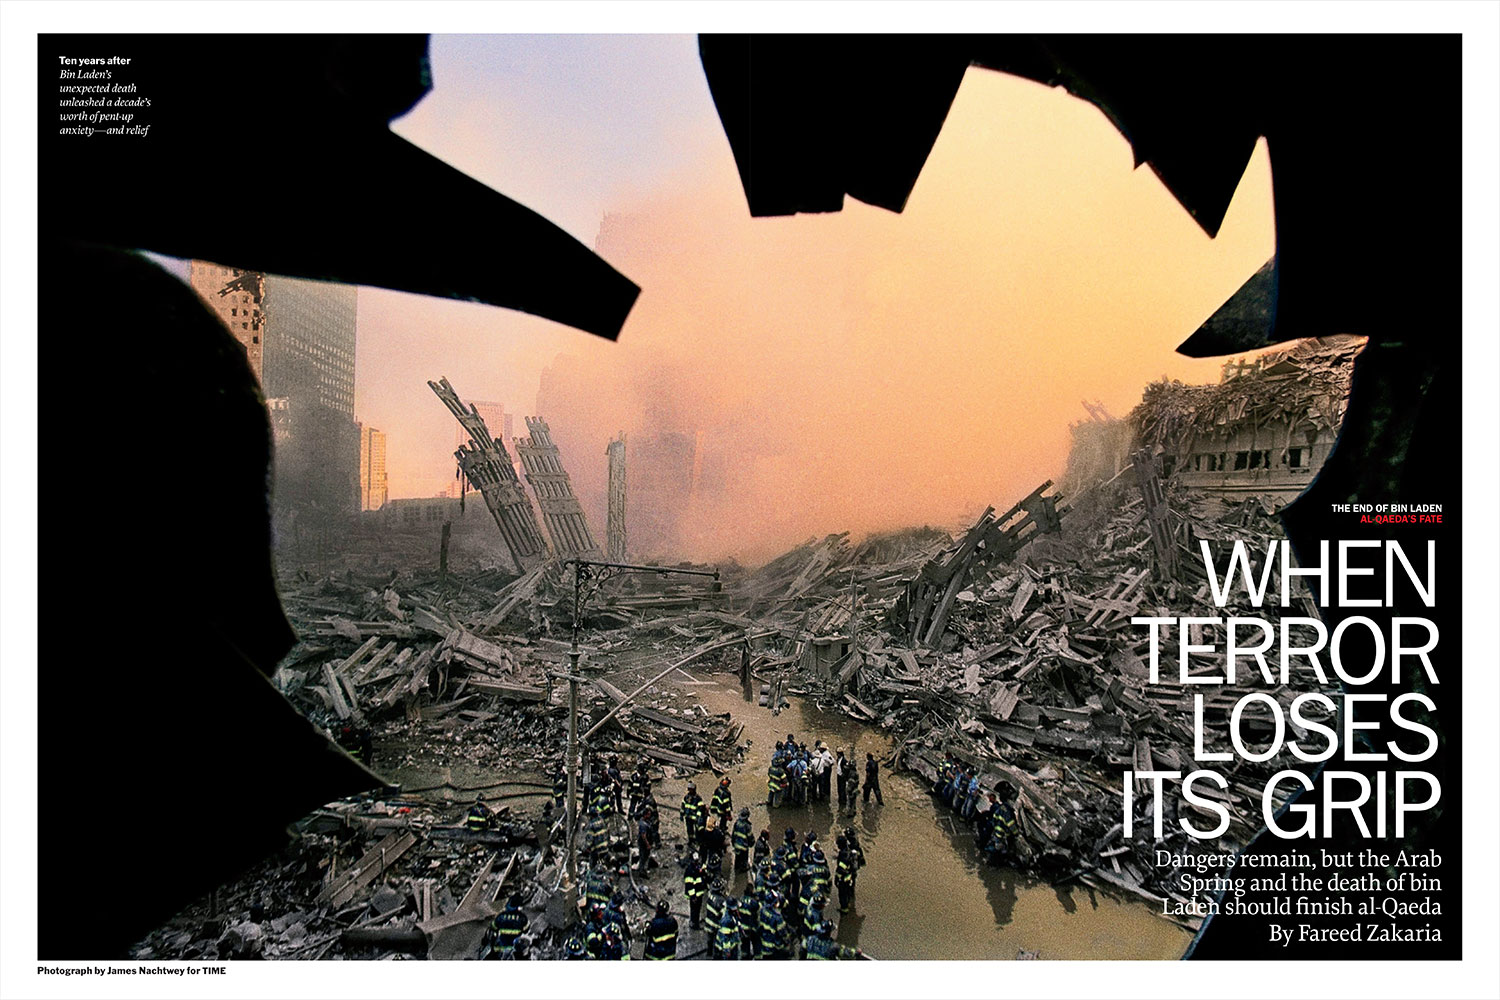 From  When Terror Loses its Grip.  May 20, 2011 issue.